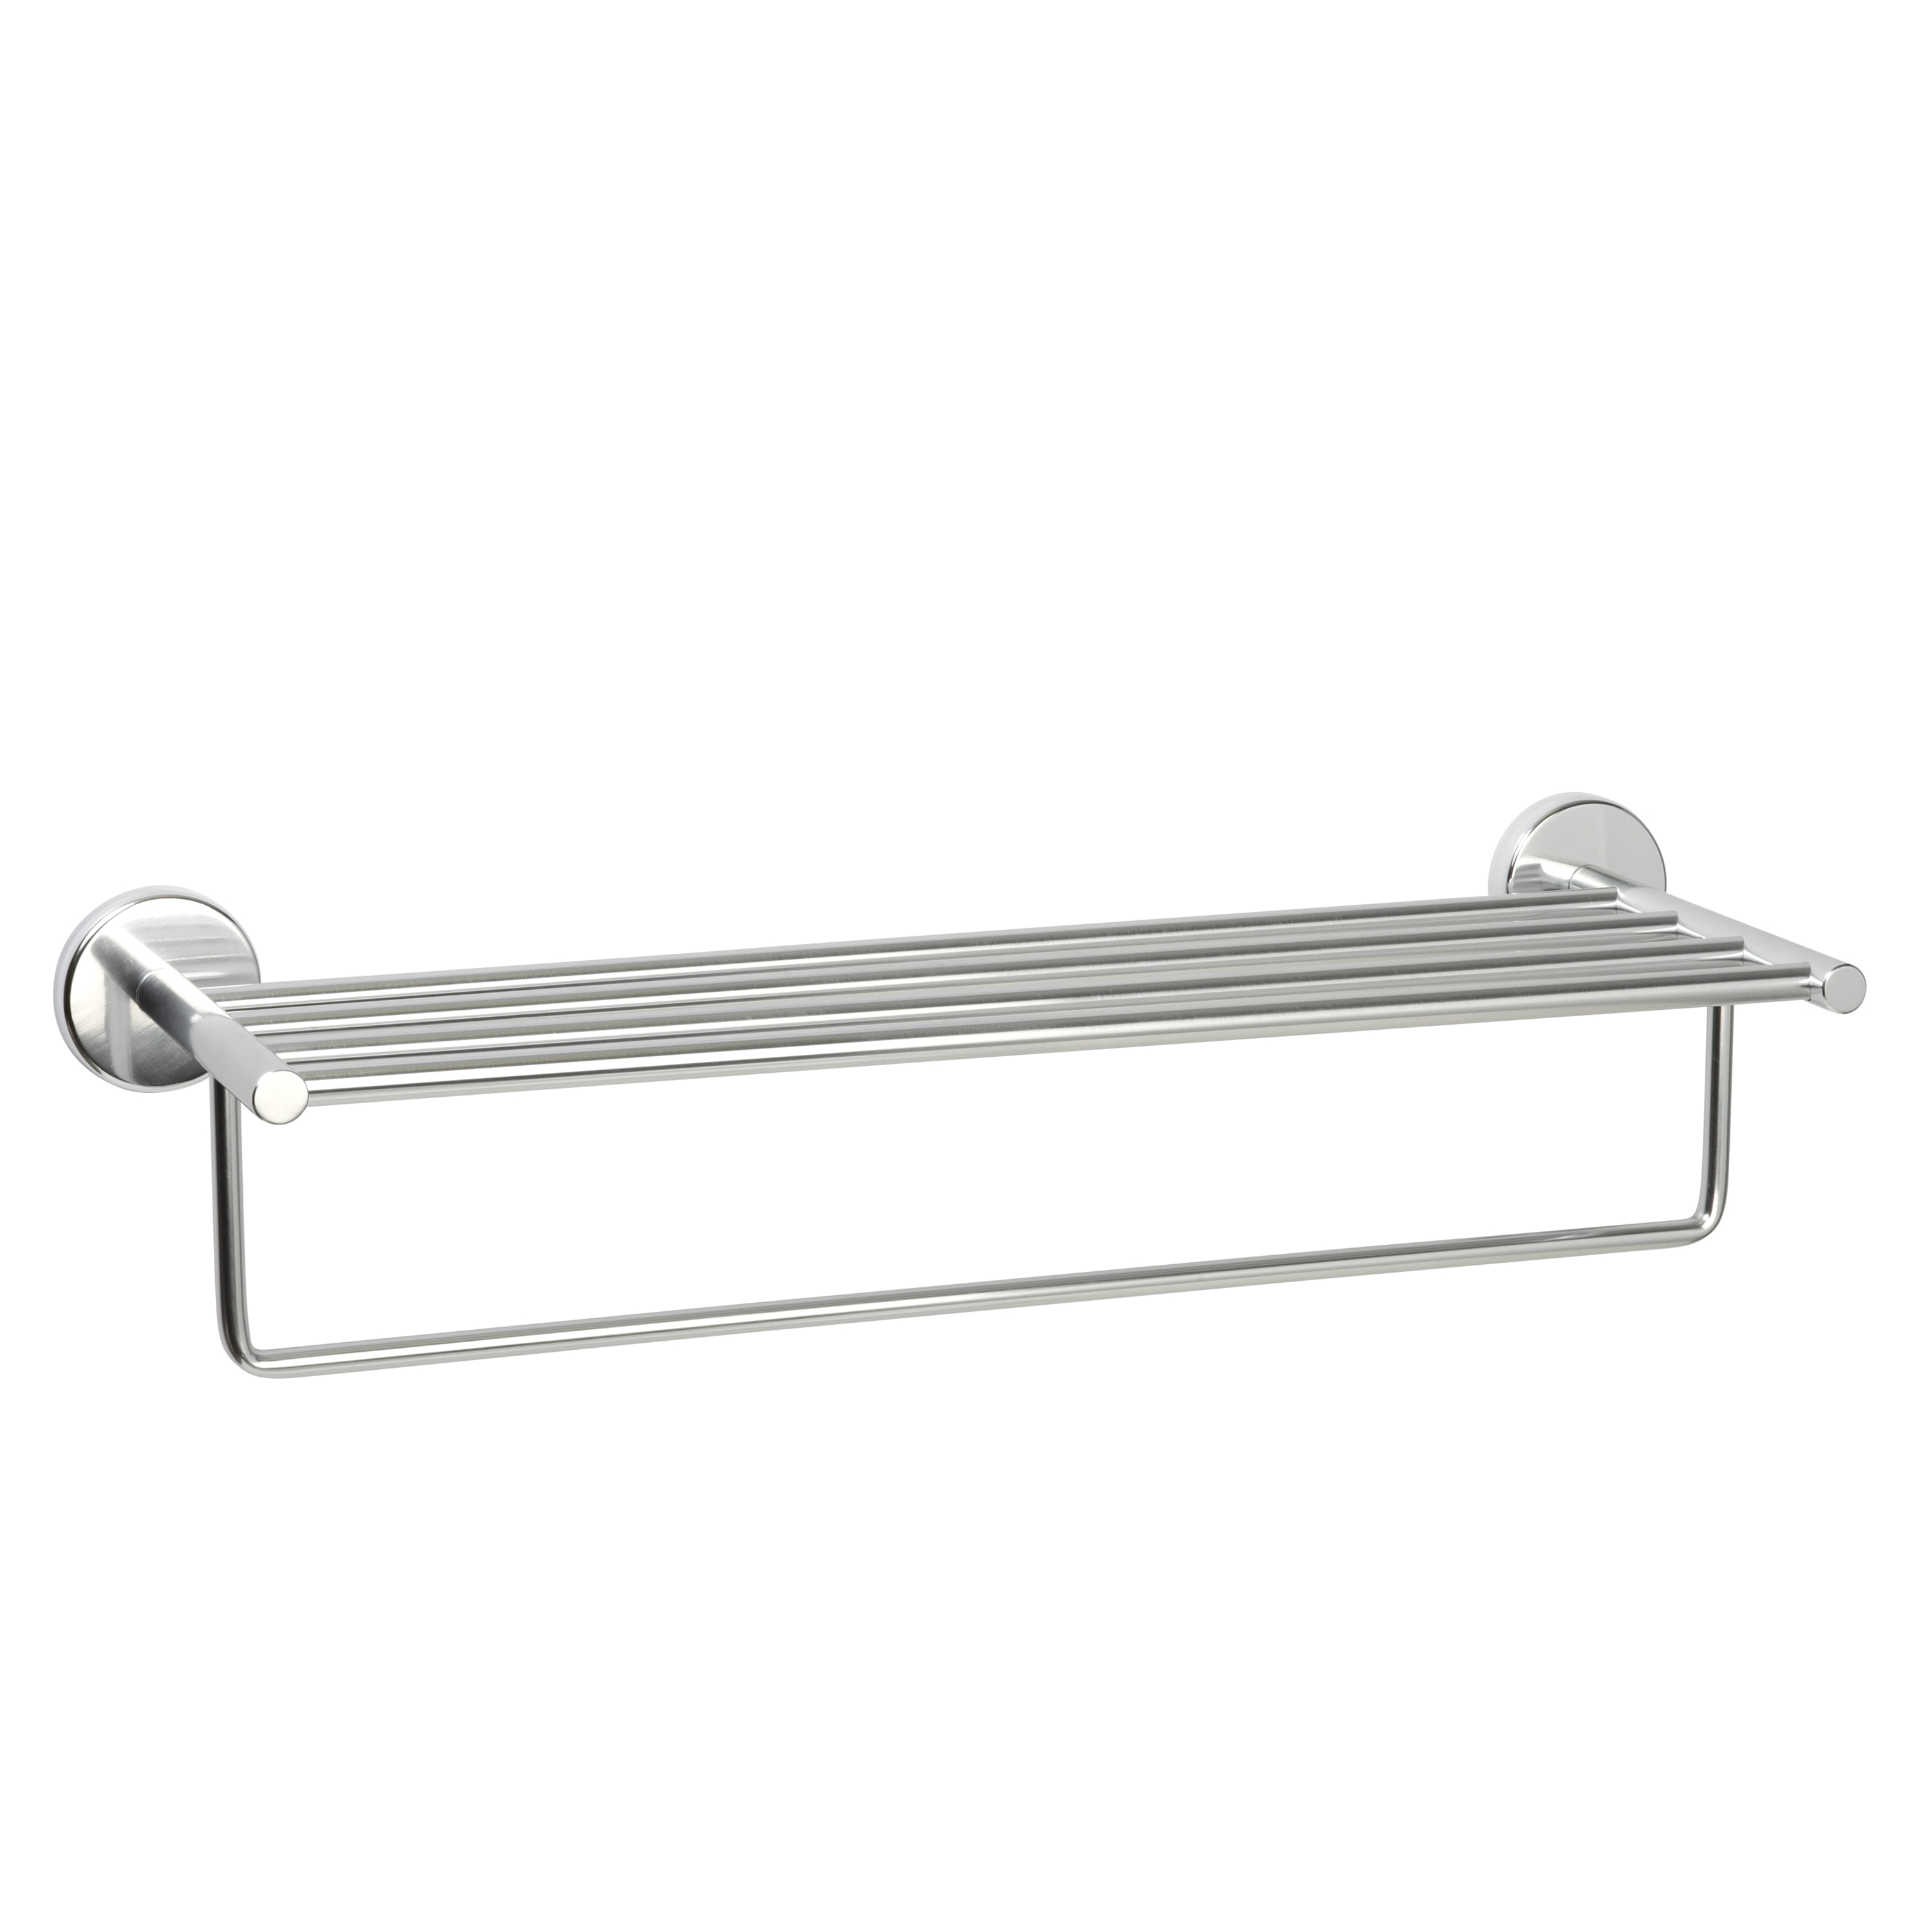 Never Rust Commercial Aluminum Hotel Towel Shelf - Chrome - Free ...